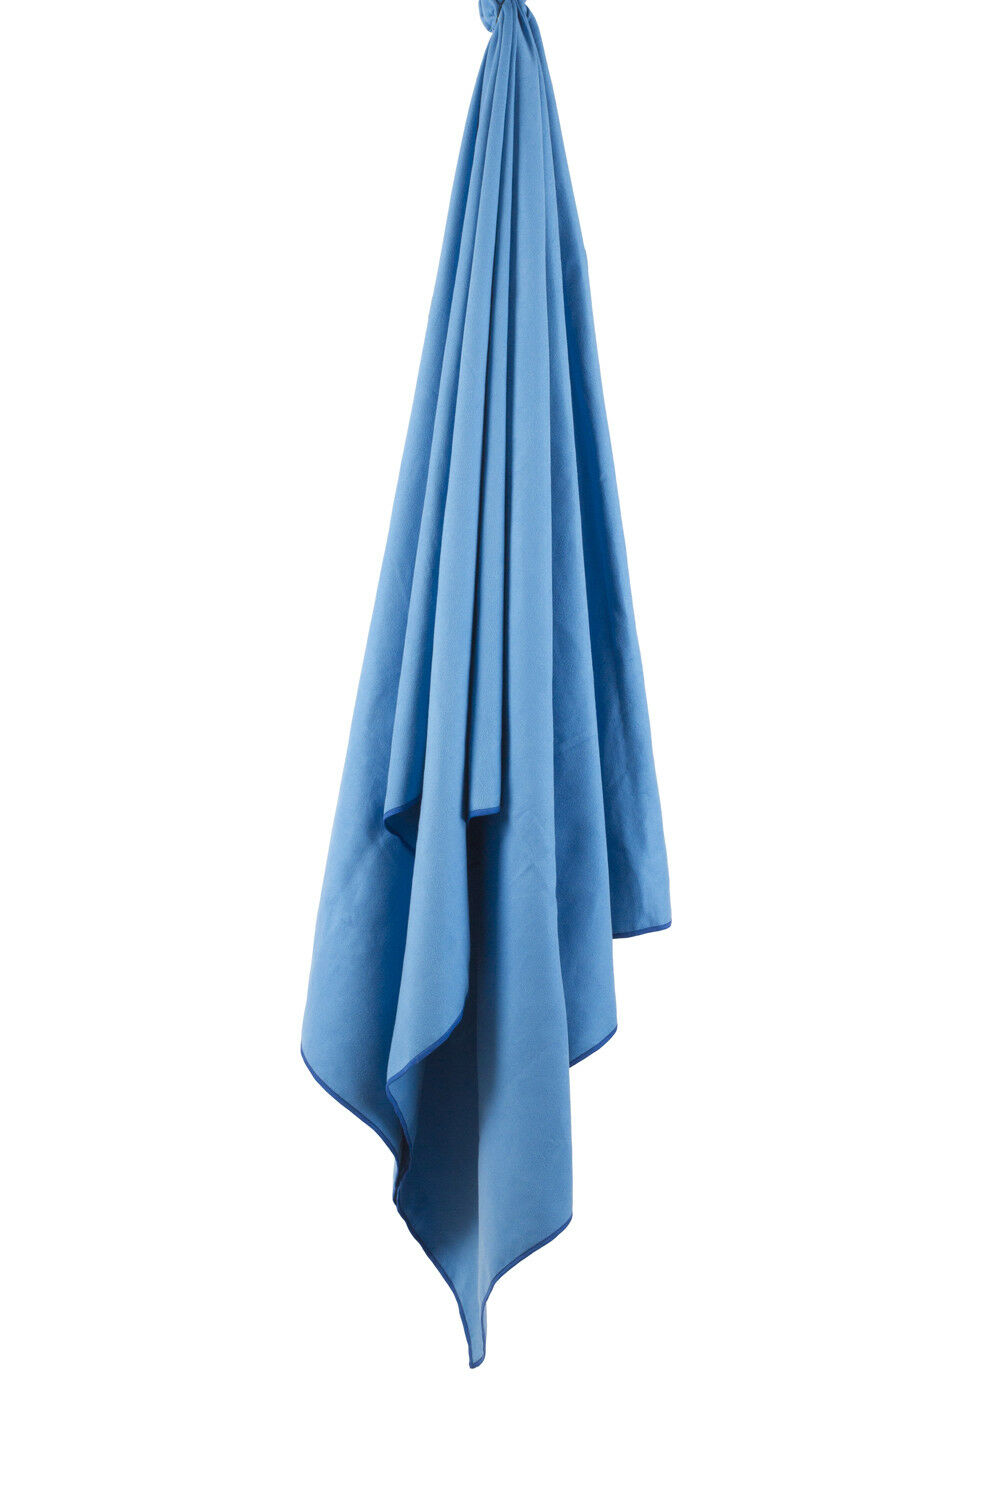 Lifeventure Lightweight Antibacterial Soft Fibre Travel Towel  Giant 150 x 90cm  discounts and more